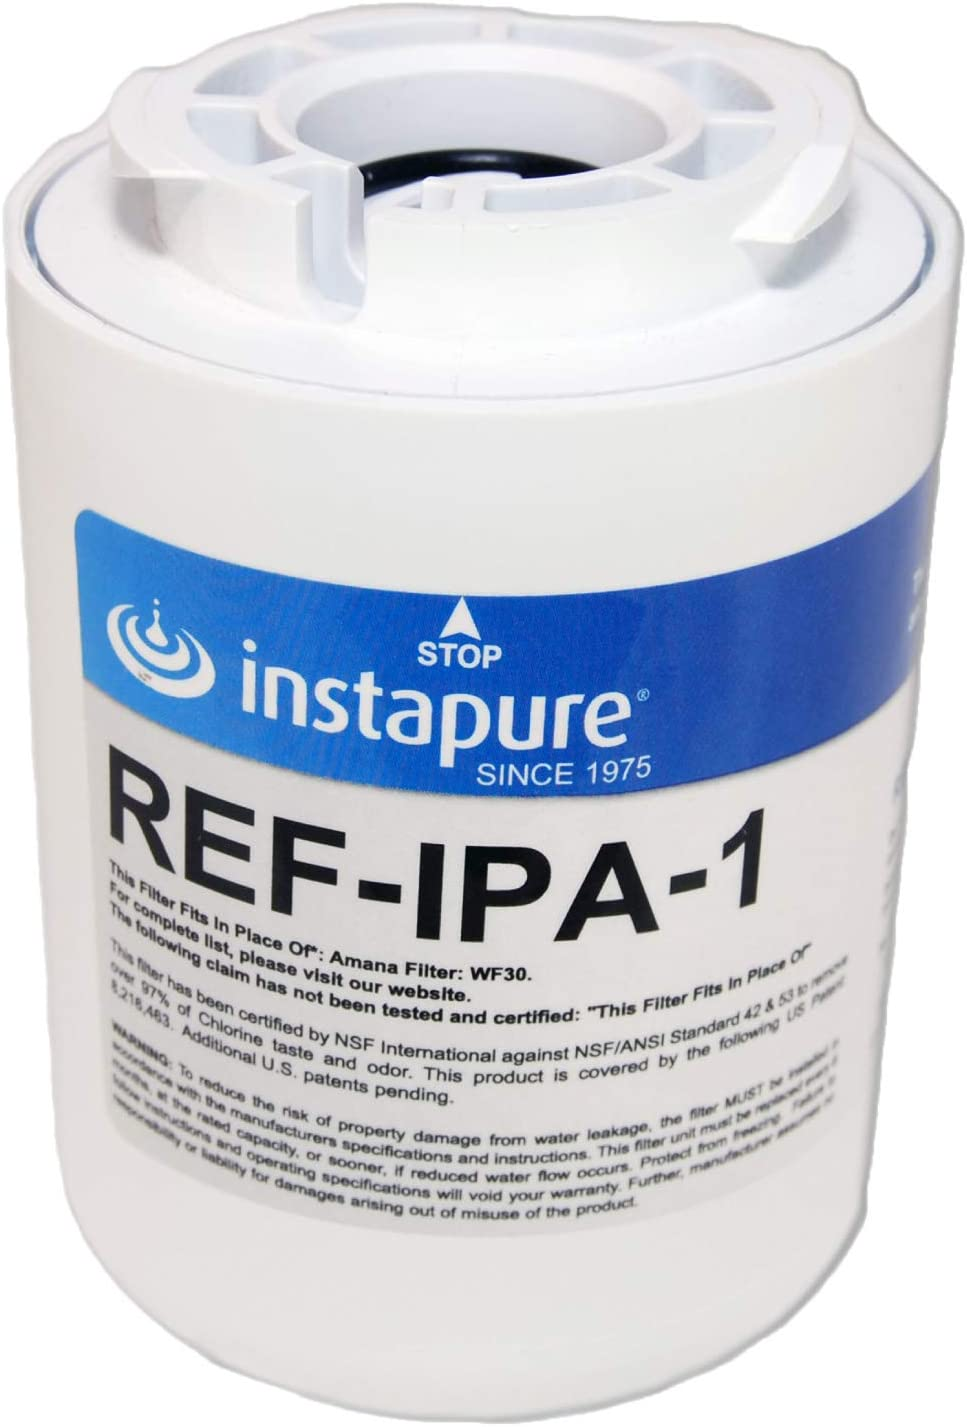 Instapure WF40 USA Made NSF/ANSI 42, 53, P473, 401 for CTO, Lead, PFOA/PFOS, Pharmaceuticals Certified Compatible Refrigerator. Instapure REF-IPA-1 ULTRA filter fits Amana WF30, Kenmore 469904 & more